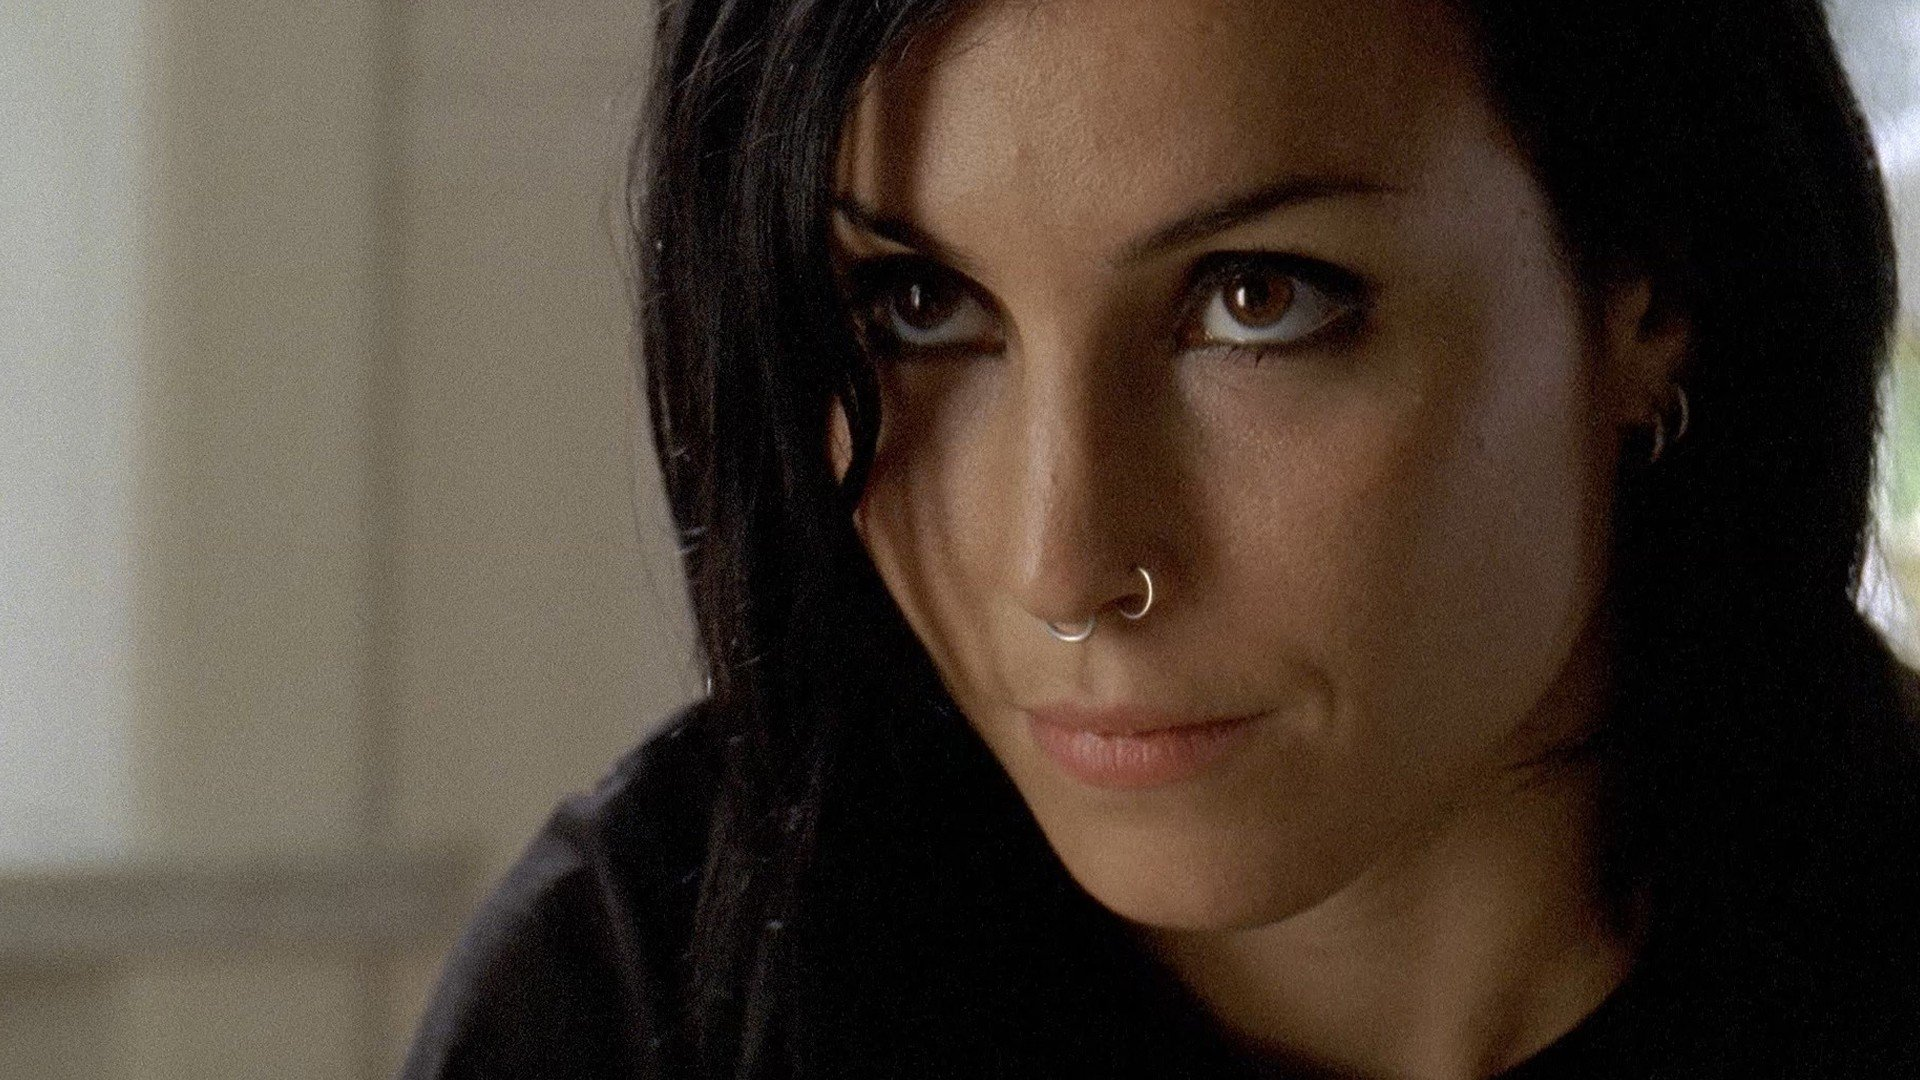 High Resolution The Girl With The Dragon Tattoo Hd 1920x1080